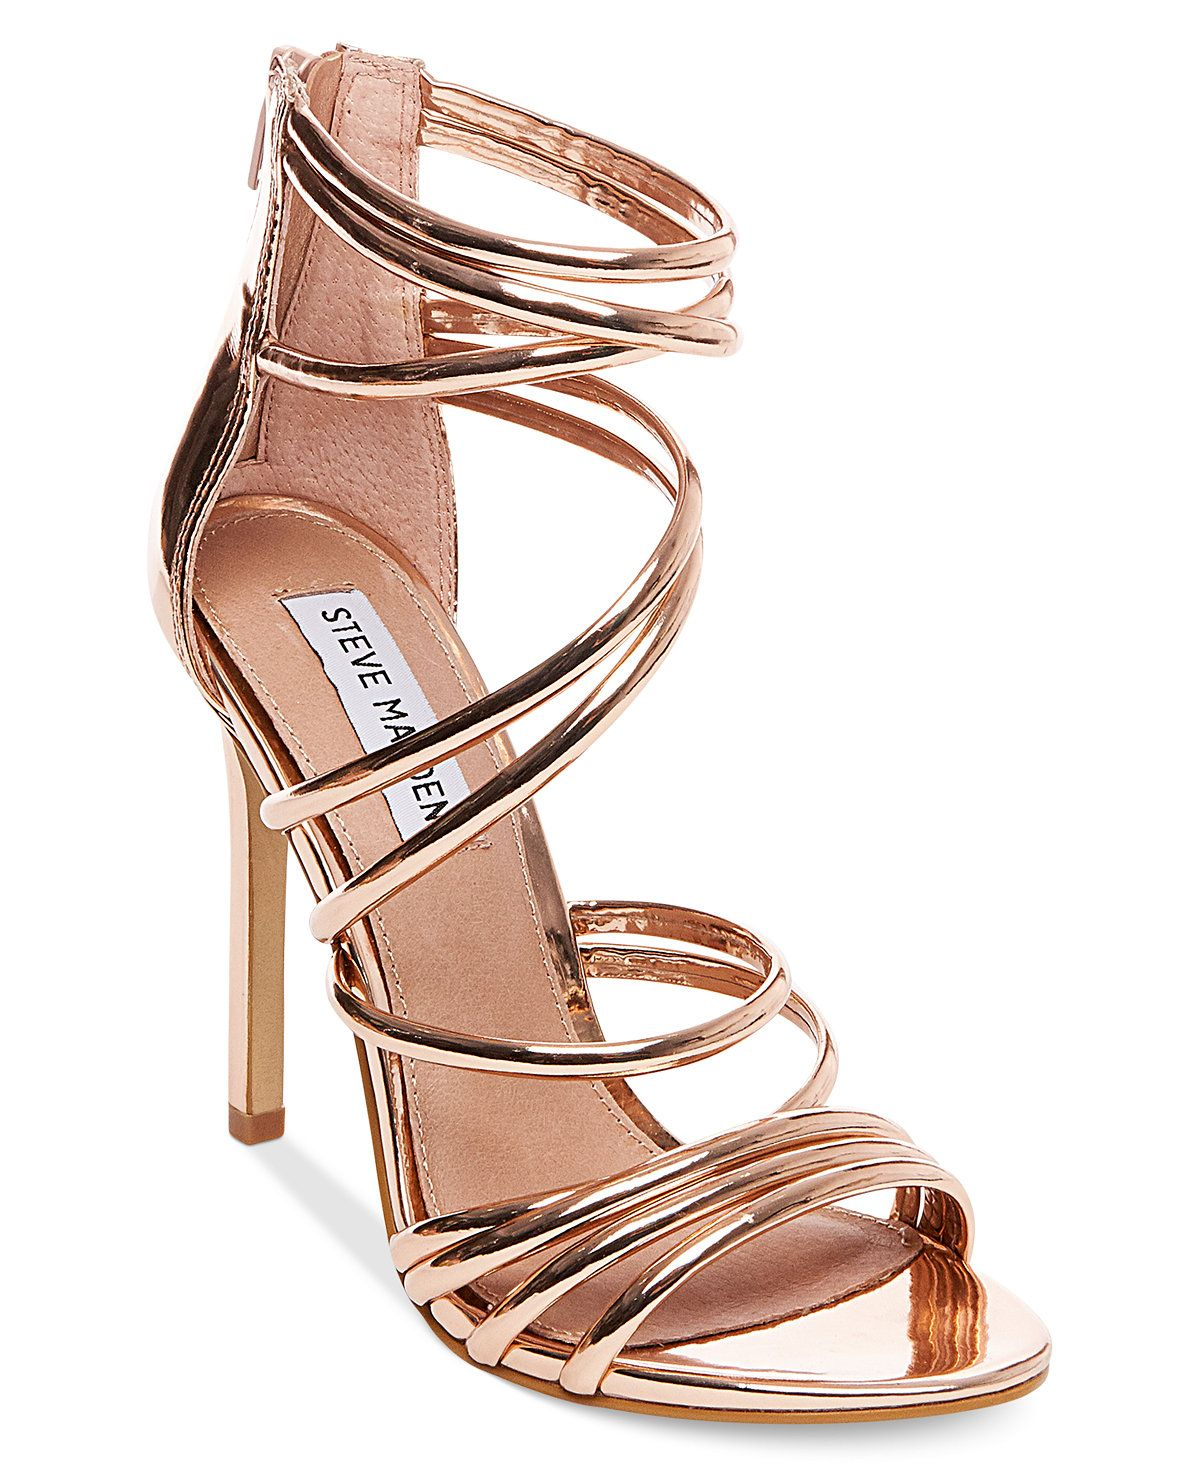 4f0262addb9 Steve Madden Women's Santi Strappy Sandals - Sandals - Shoes ...